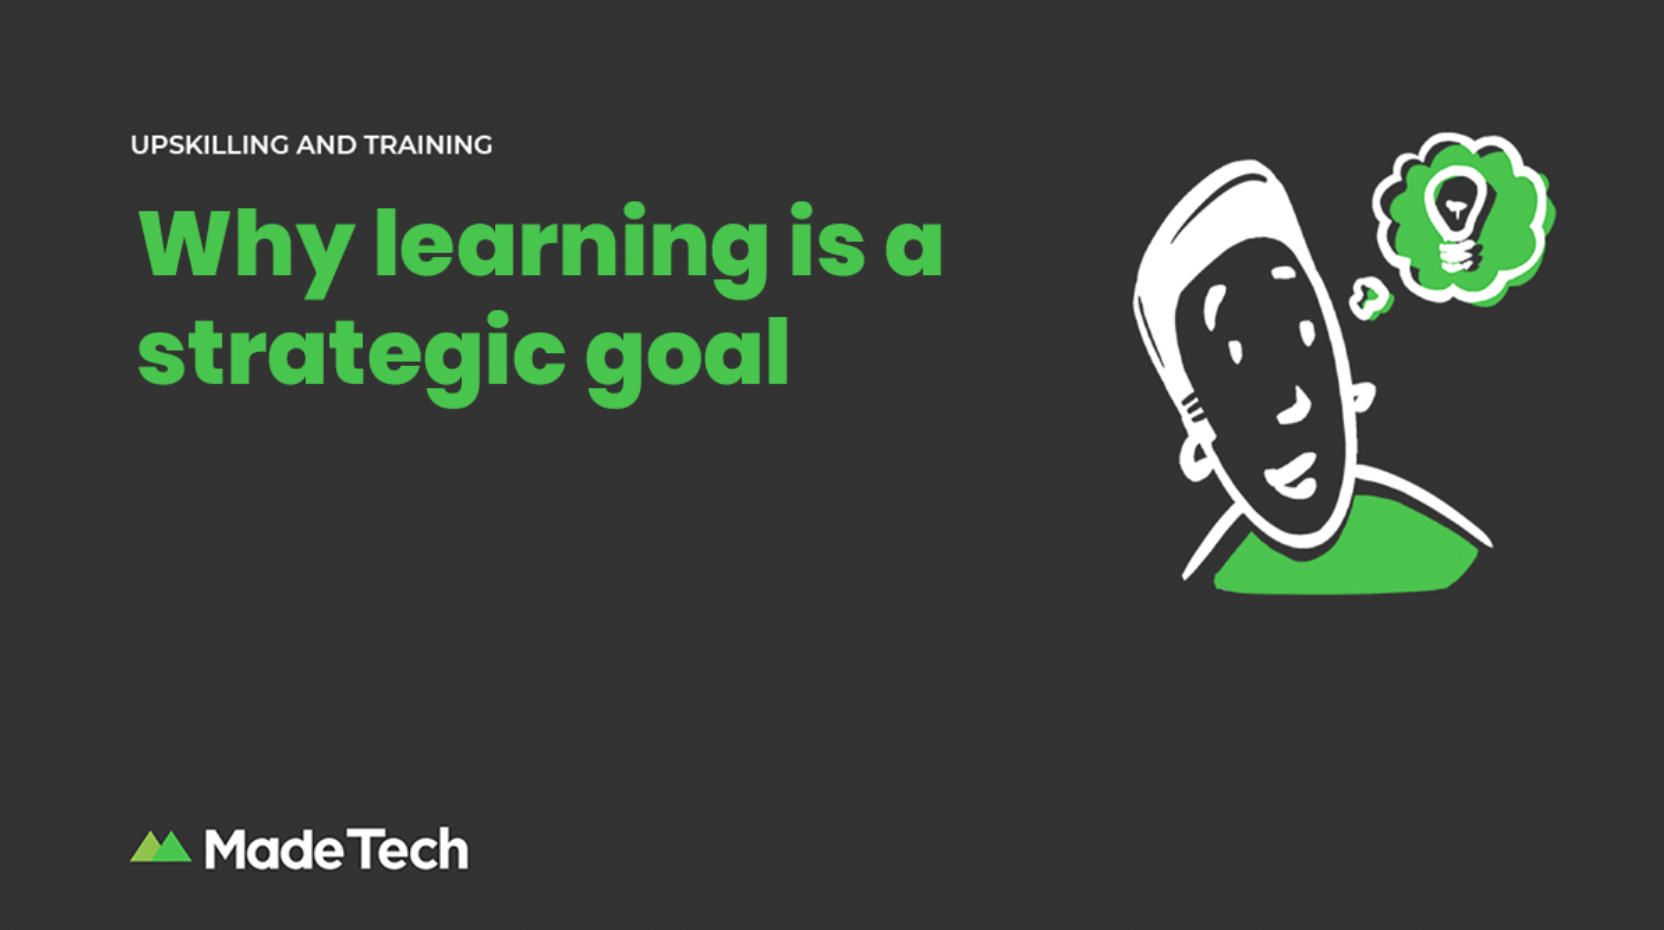 Why learning is a strategic goal